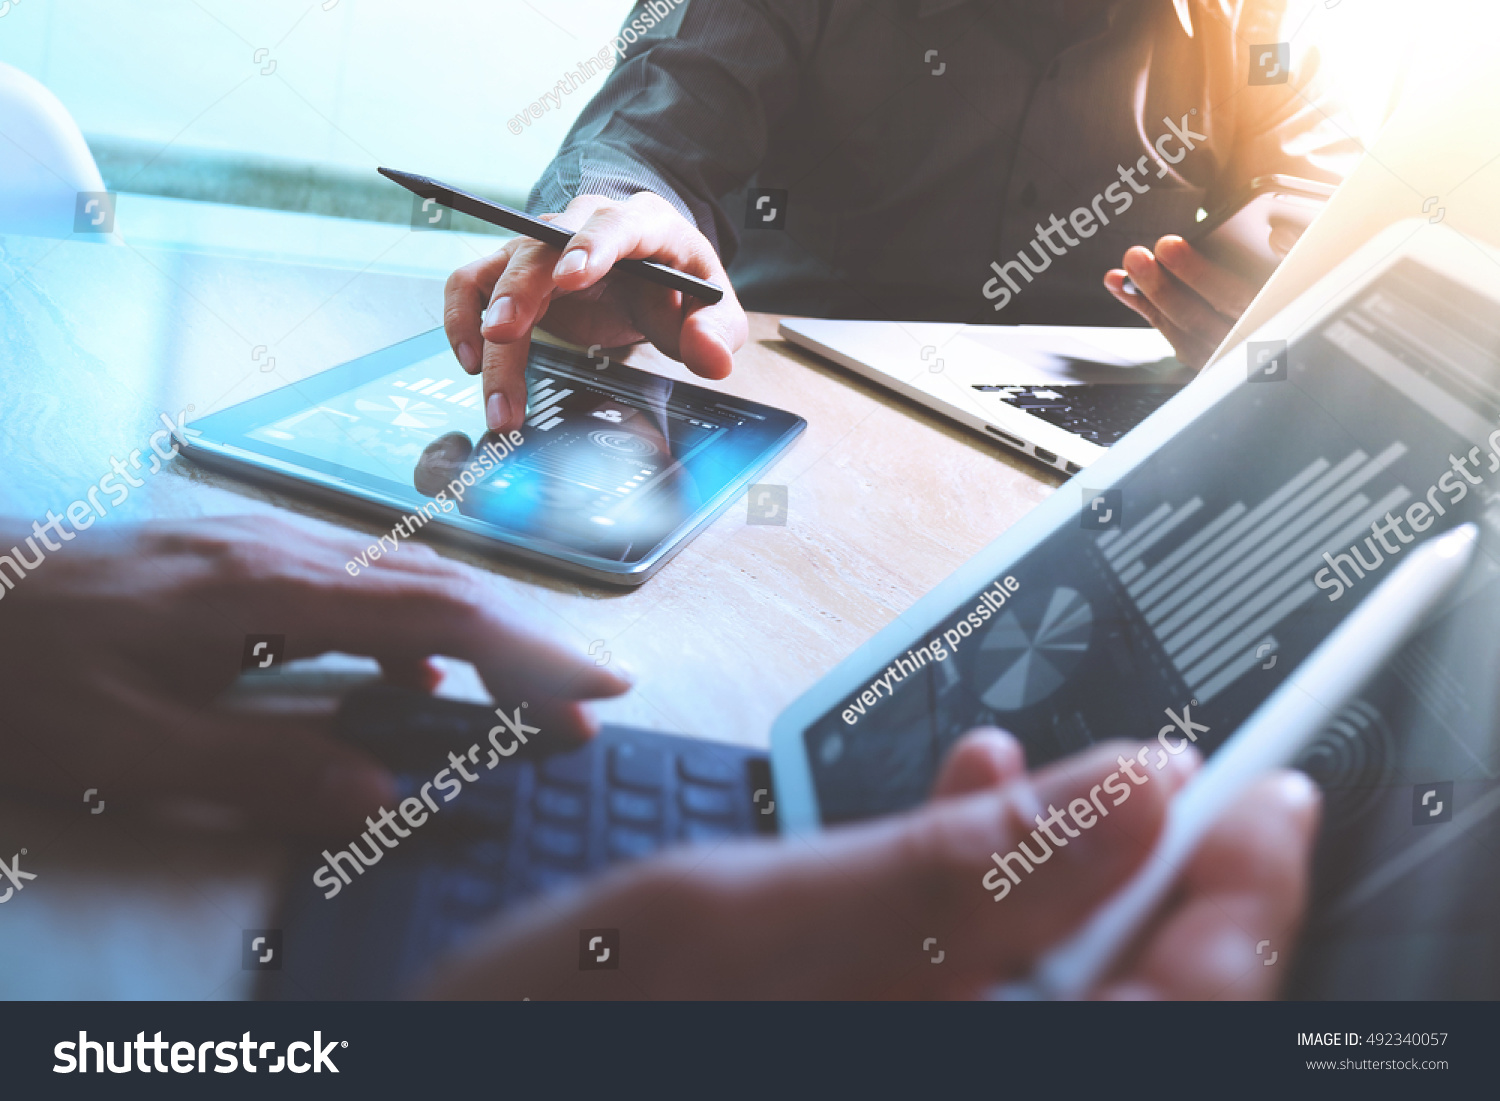 Business team present. Photo professional investor working new startup project. Finance meeting.Digital tablet laptop computer  smart phone using, keyboard docking screen foreground,filter #492340057